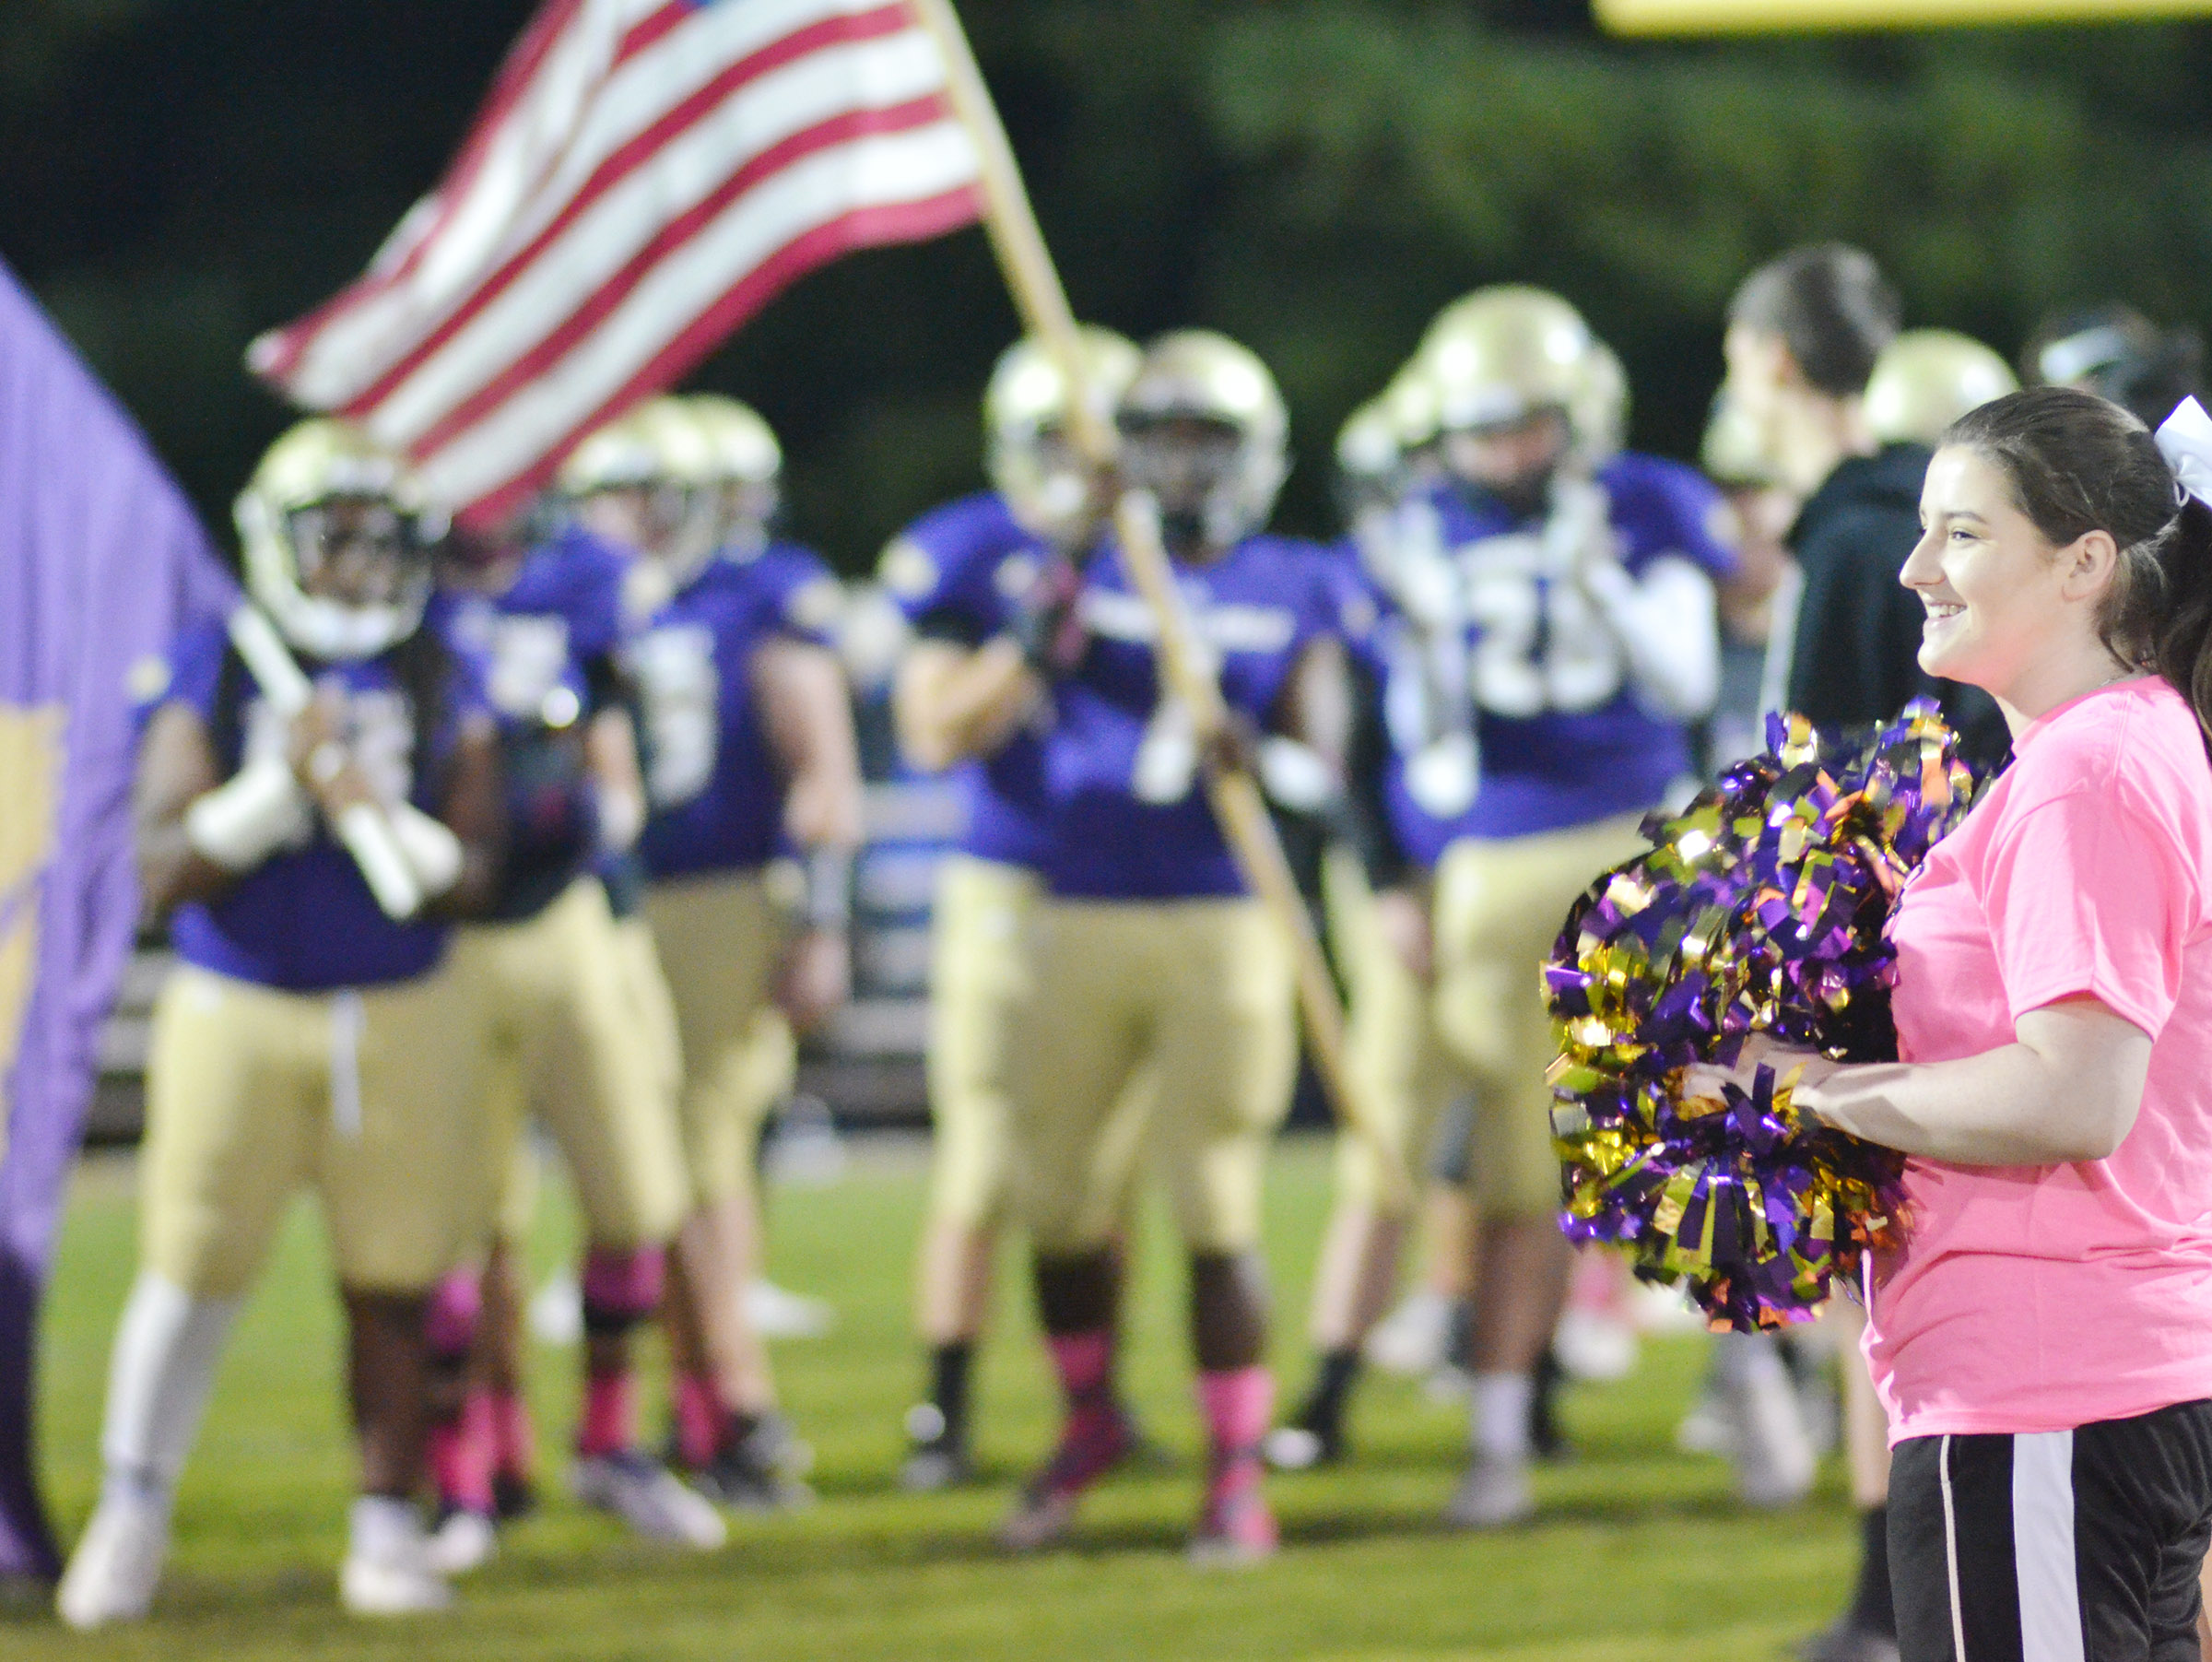 CHS sophomore Alli Wilson cheers as football players prepare to take the field.